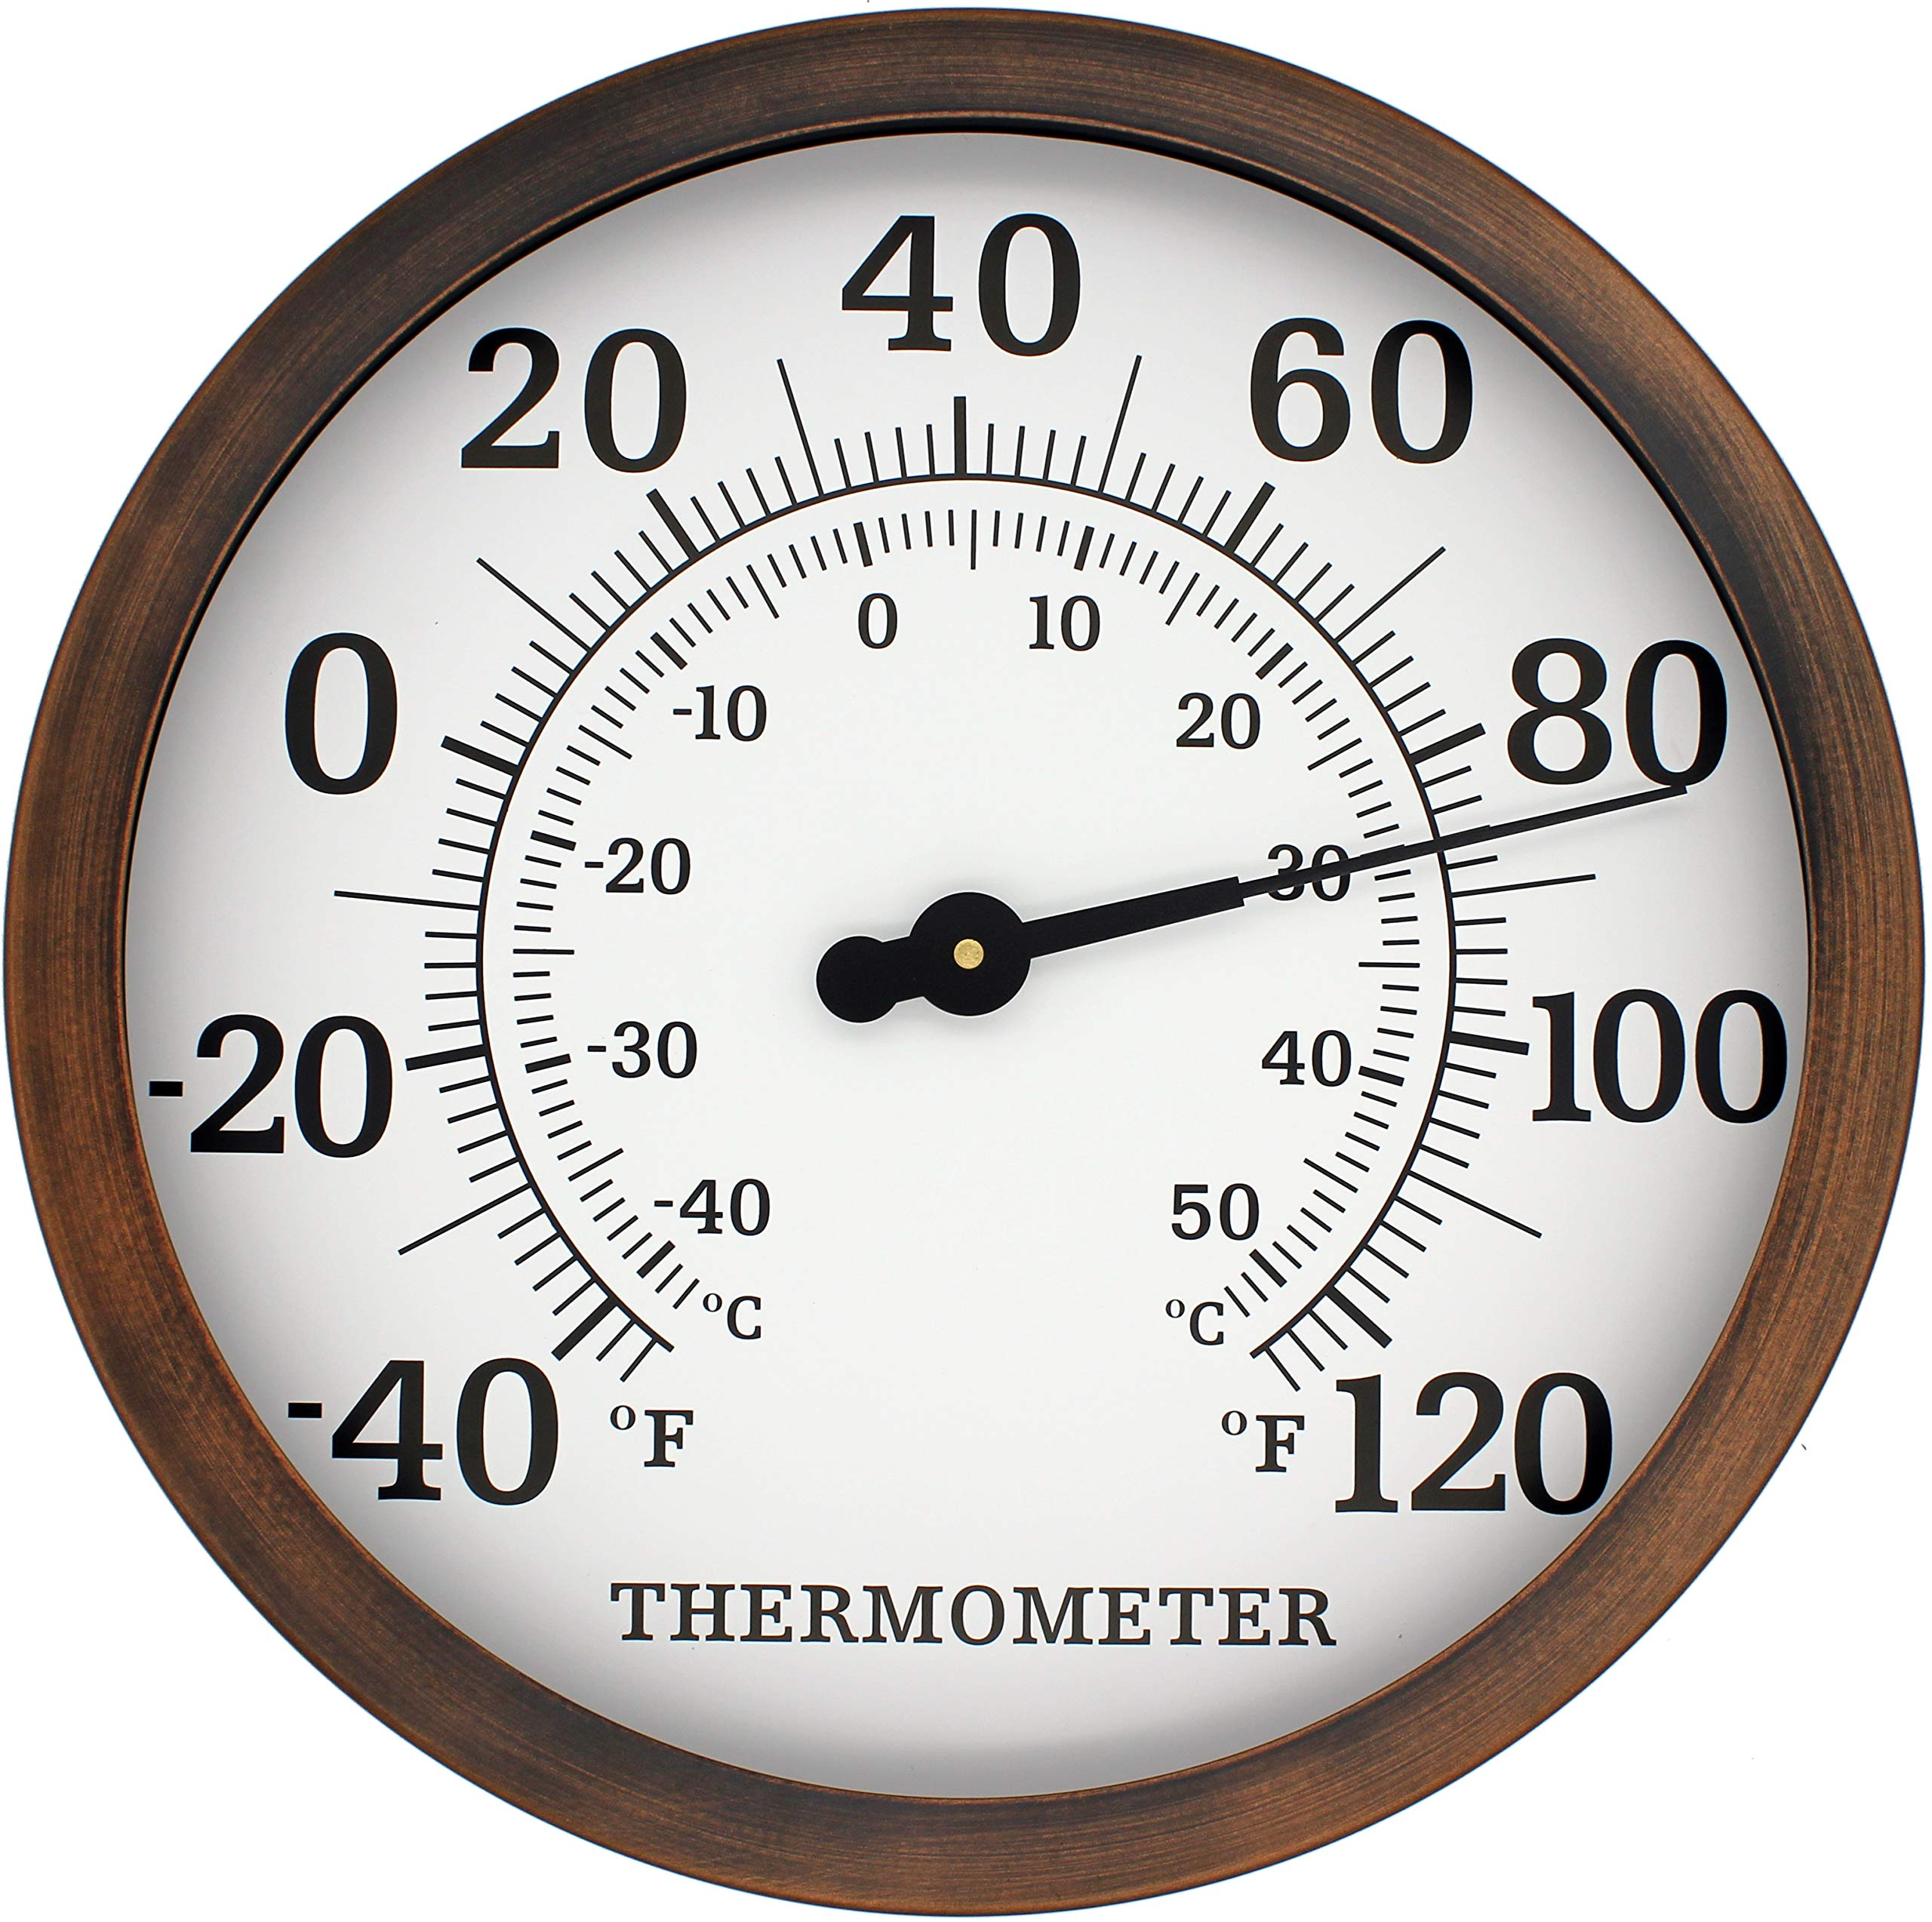 PEDILYS Temperature Thermometer 12' Large, Decorative, Wall-Mounted Indoor / Outdoor Accurate Celsius and Fahrenheit Measurements for Home, Garage, Pool and Patio (Bronze)